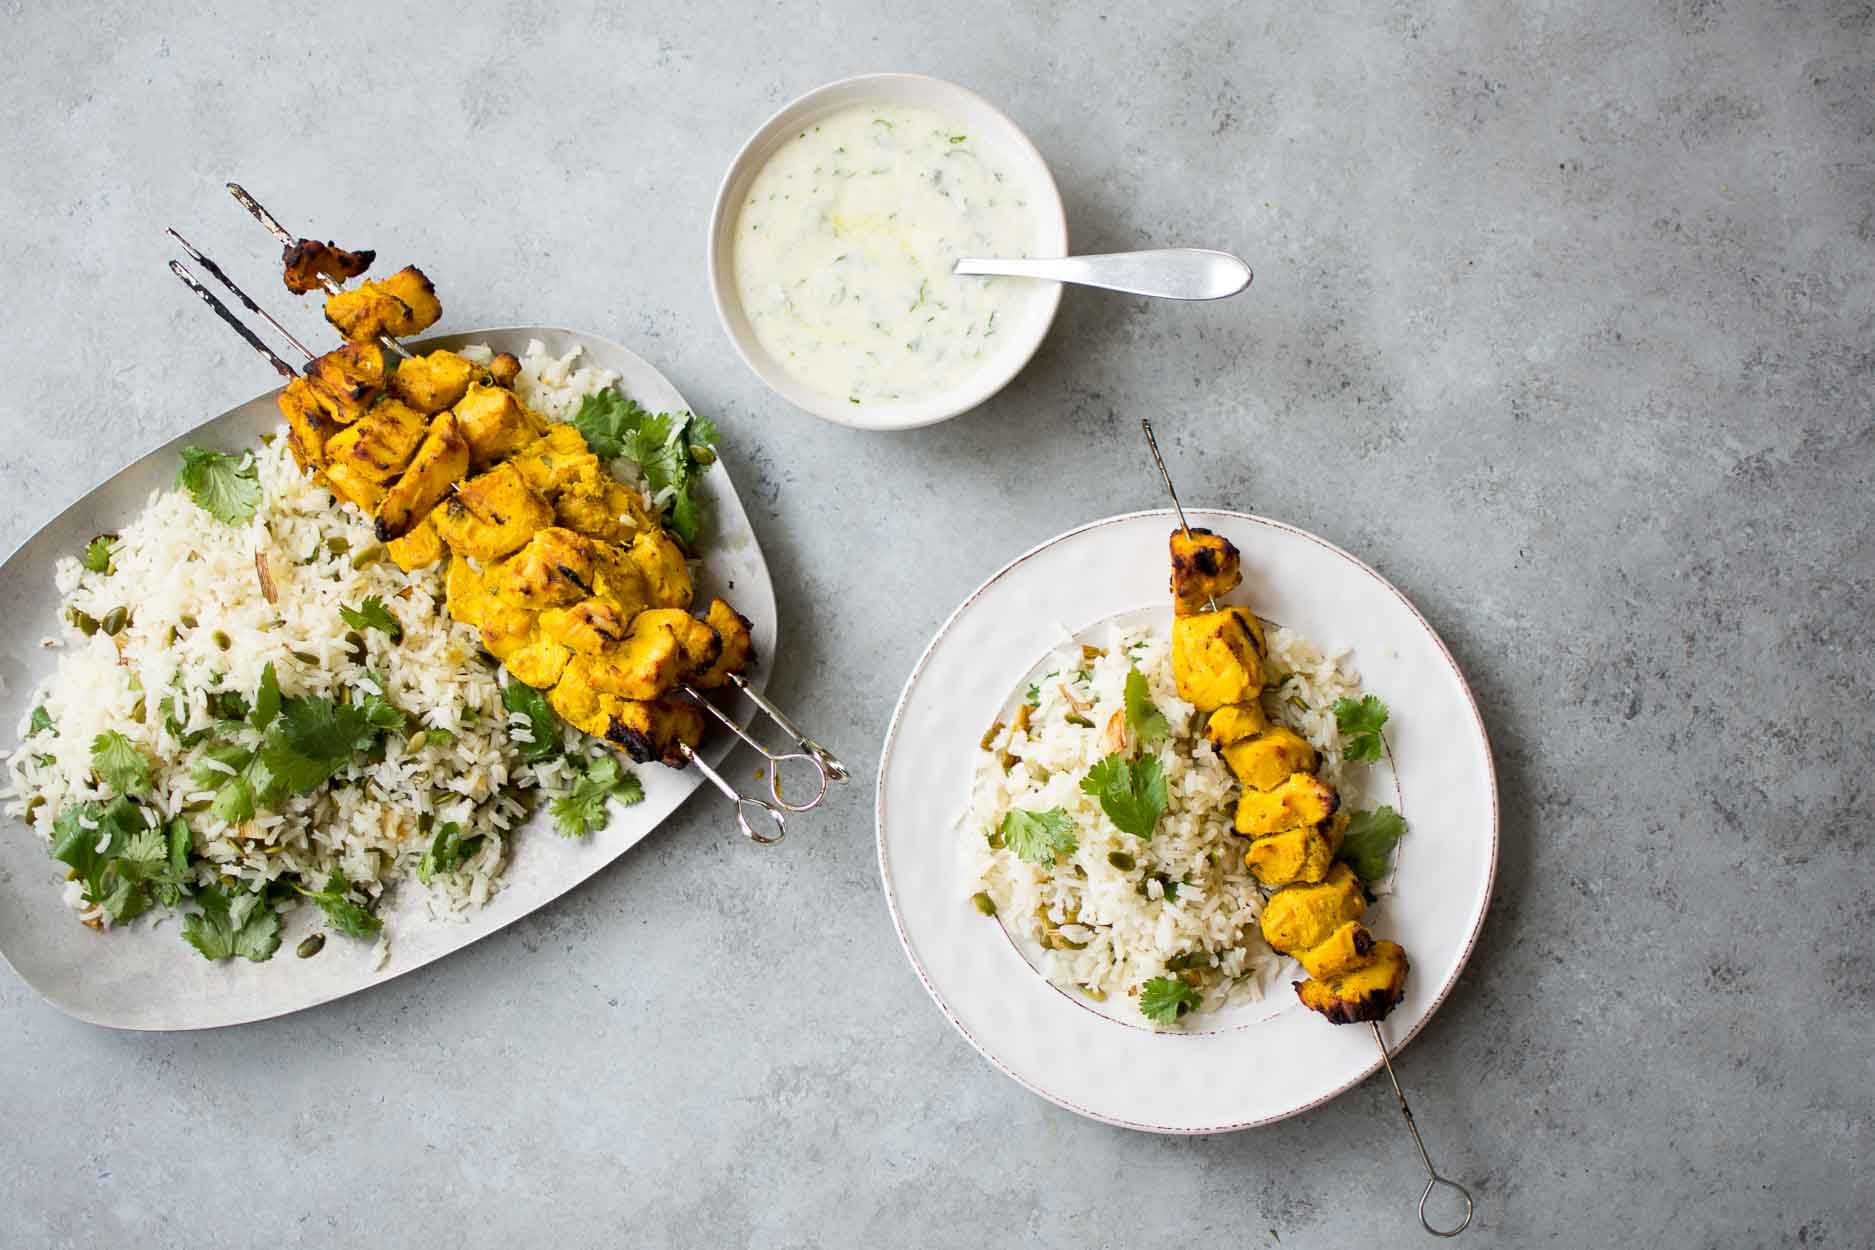 Grilled Turmeric Chicken Kebabs over Basmati Rice with Charred Scallions makes a super easy weeknight supper.